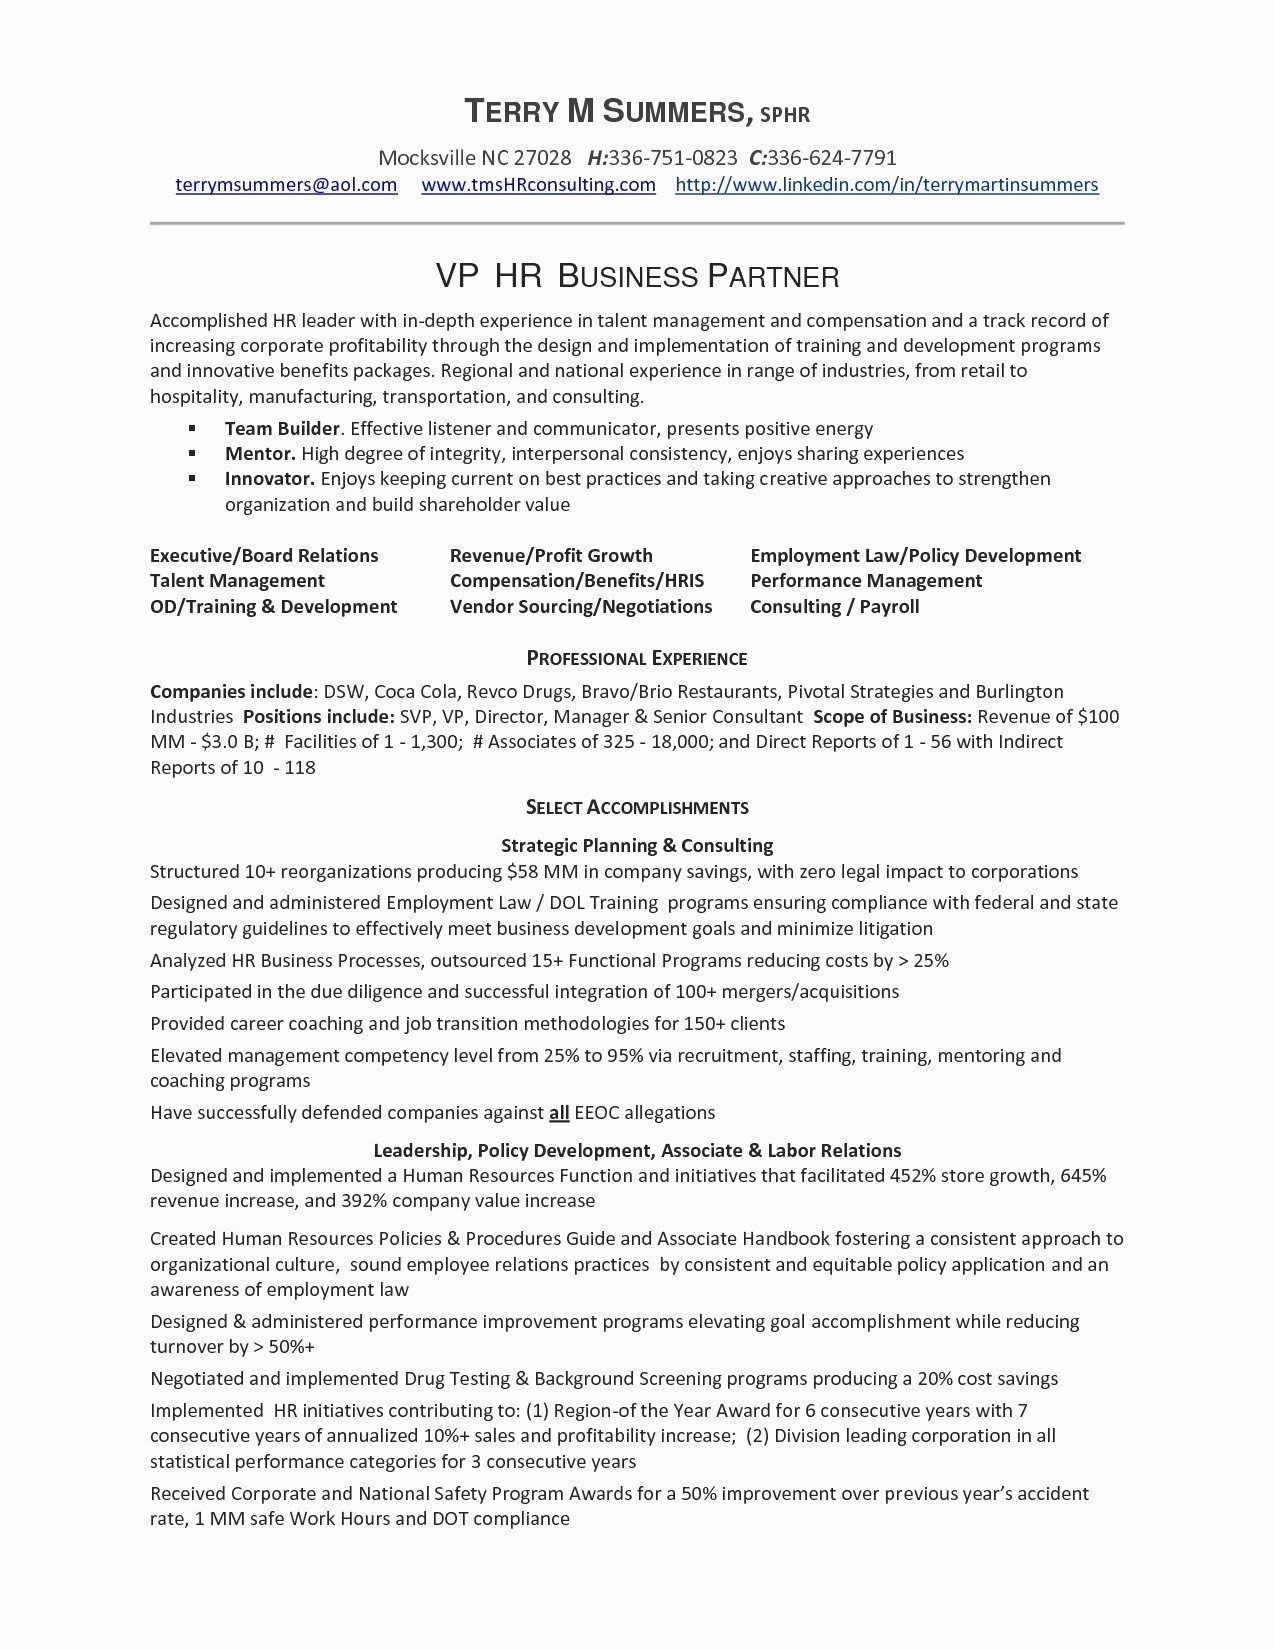 Fox School Of Business Resume Template - Business Analyst Resume Sample Pdf